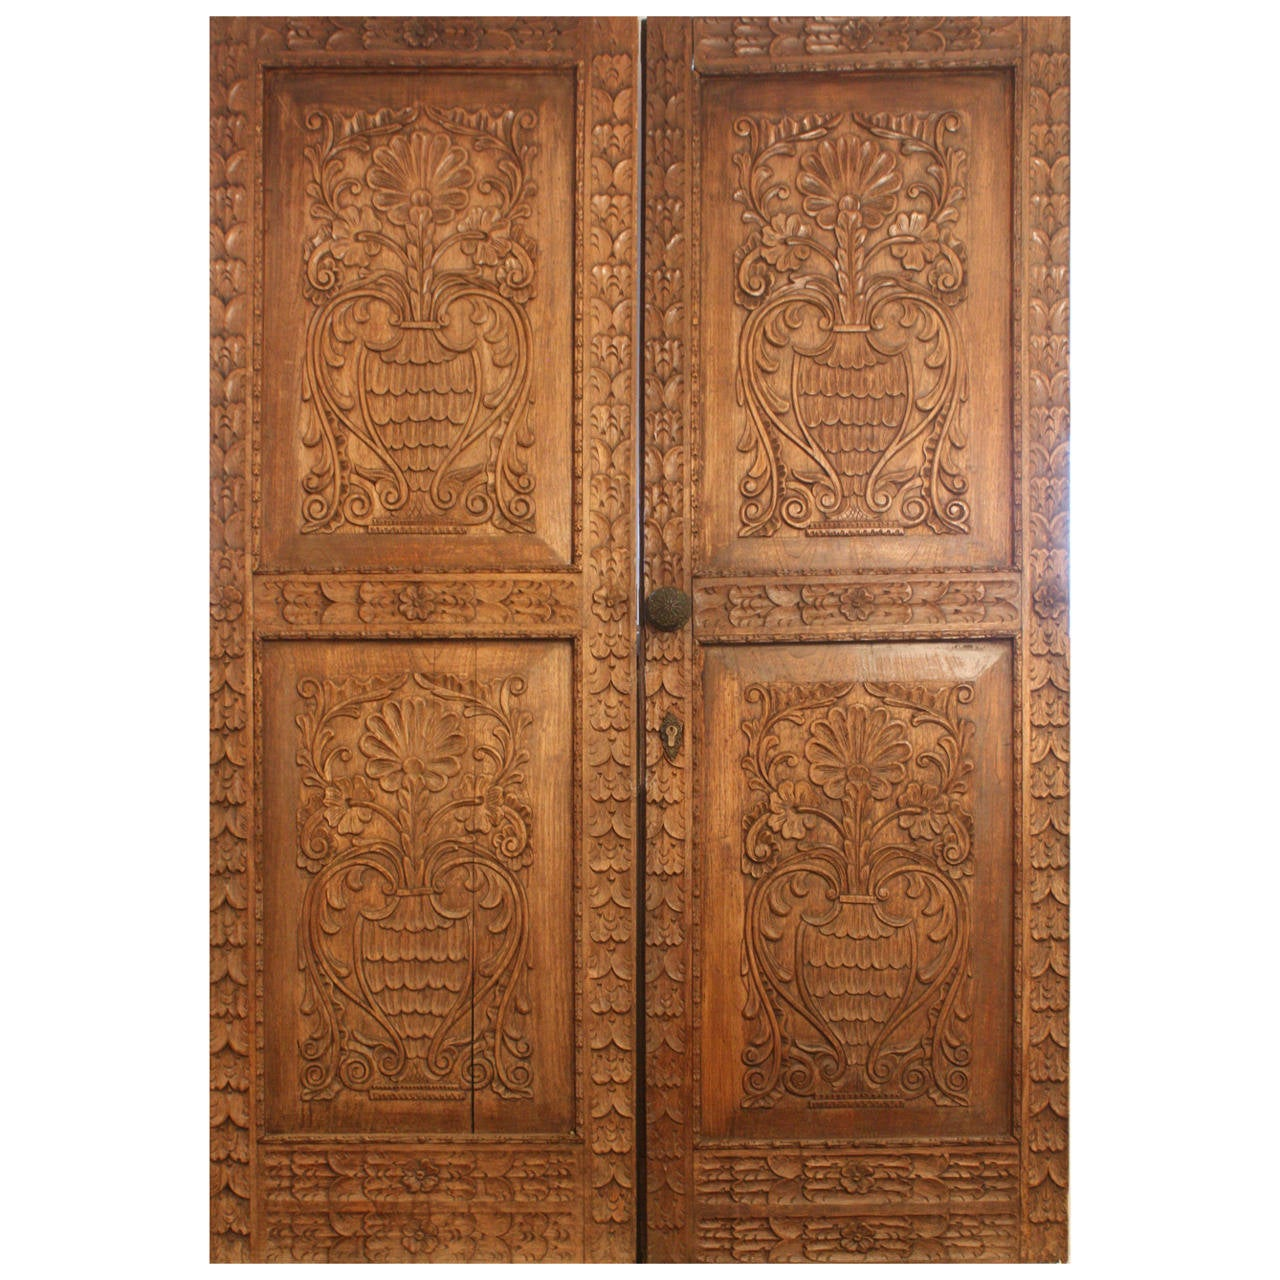 Pair of Antique Carved Spanish Doors 1 - Pair Of Antique Carved Spanish Doors For Sale At 1stdibs